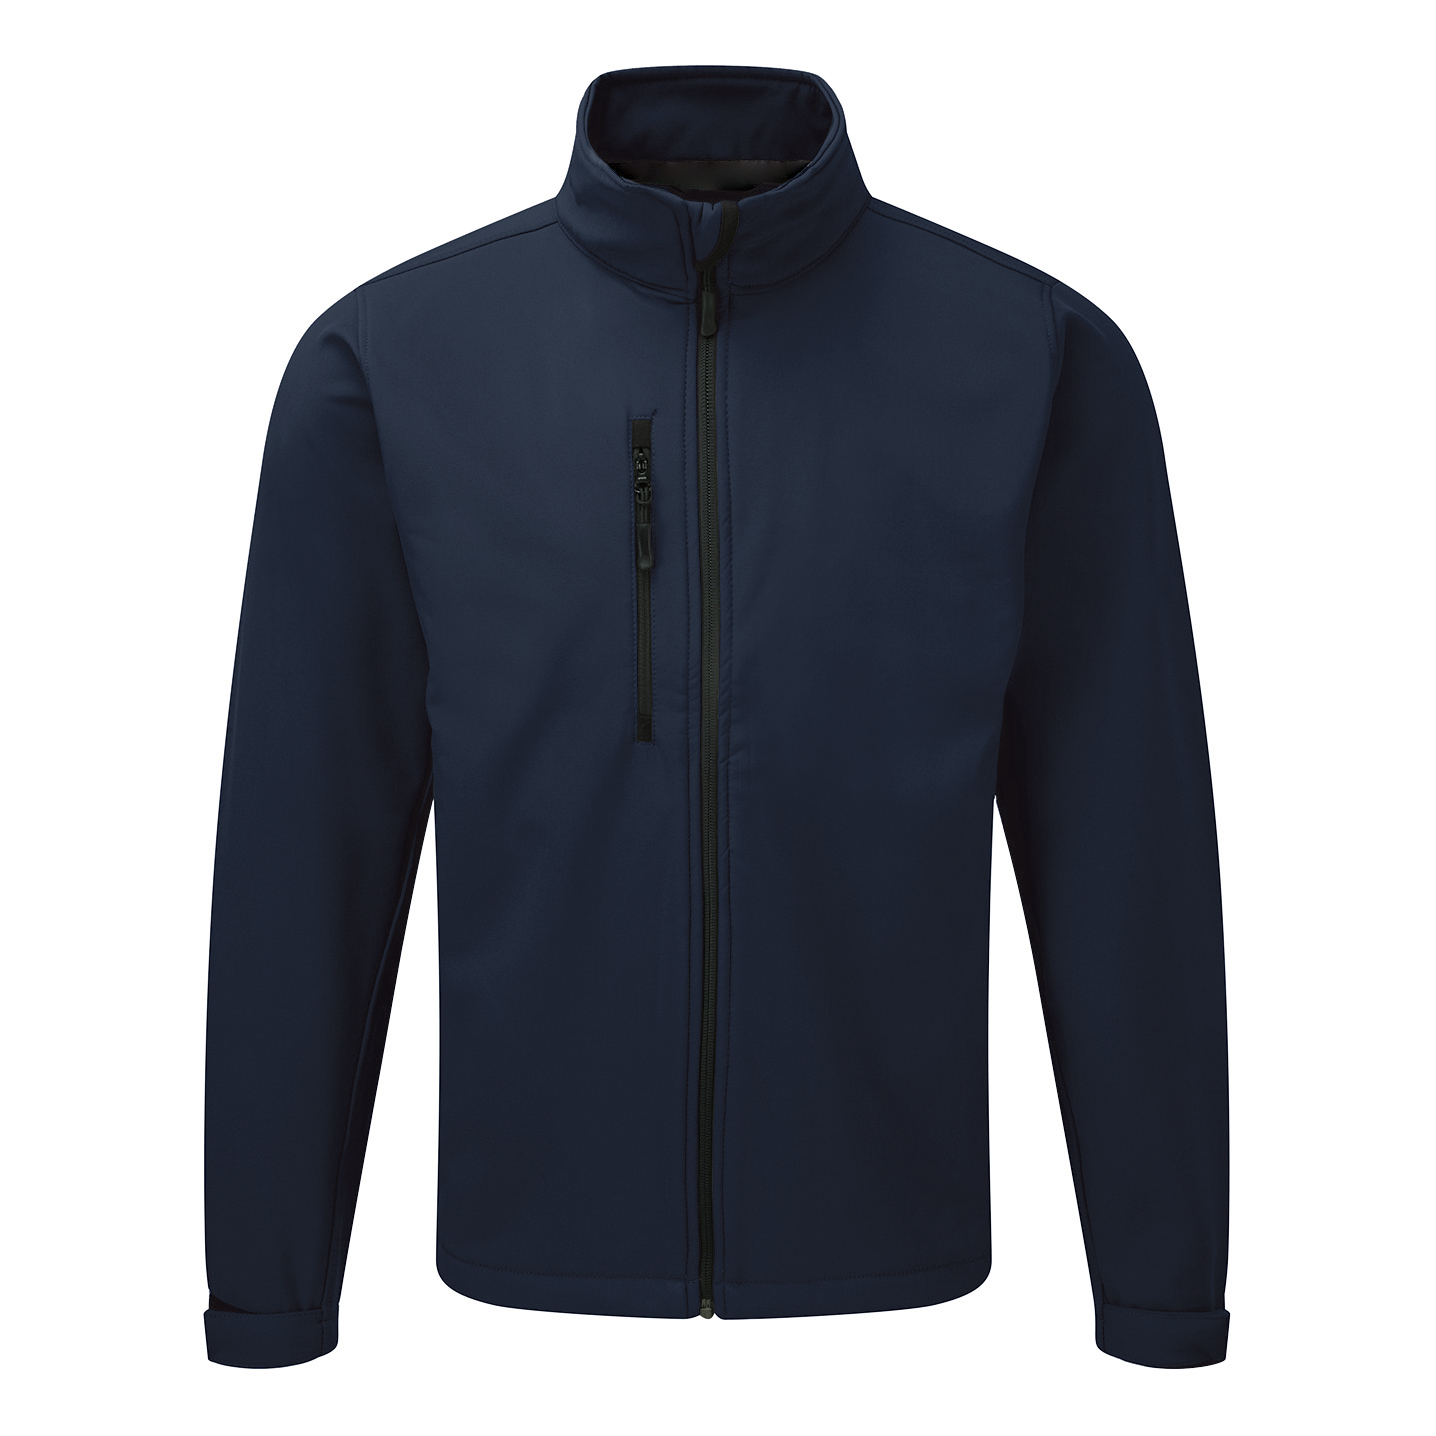 Click Workwear Soft Shell Jacket Water Resistant Windproof XS Navy Ref SSJNXS *Approx 3 Day Leadtime*